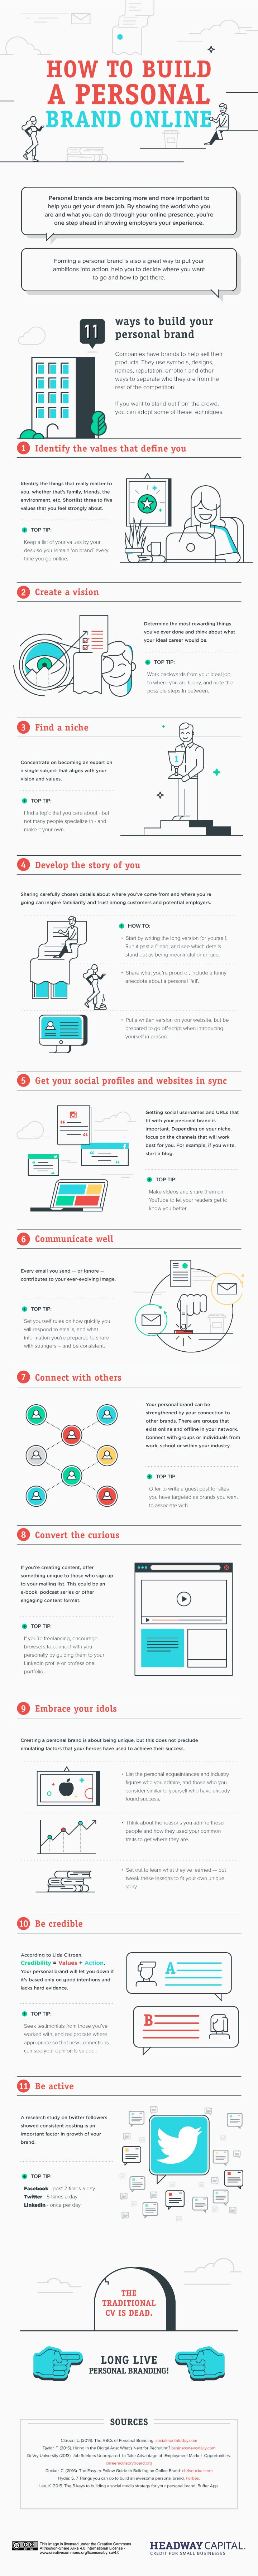 How to Build a Personal Brand Online [Infographic]